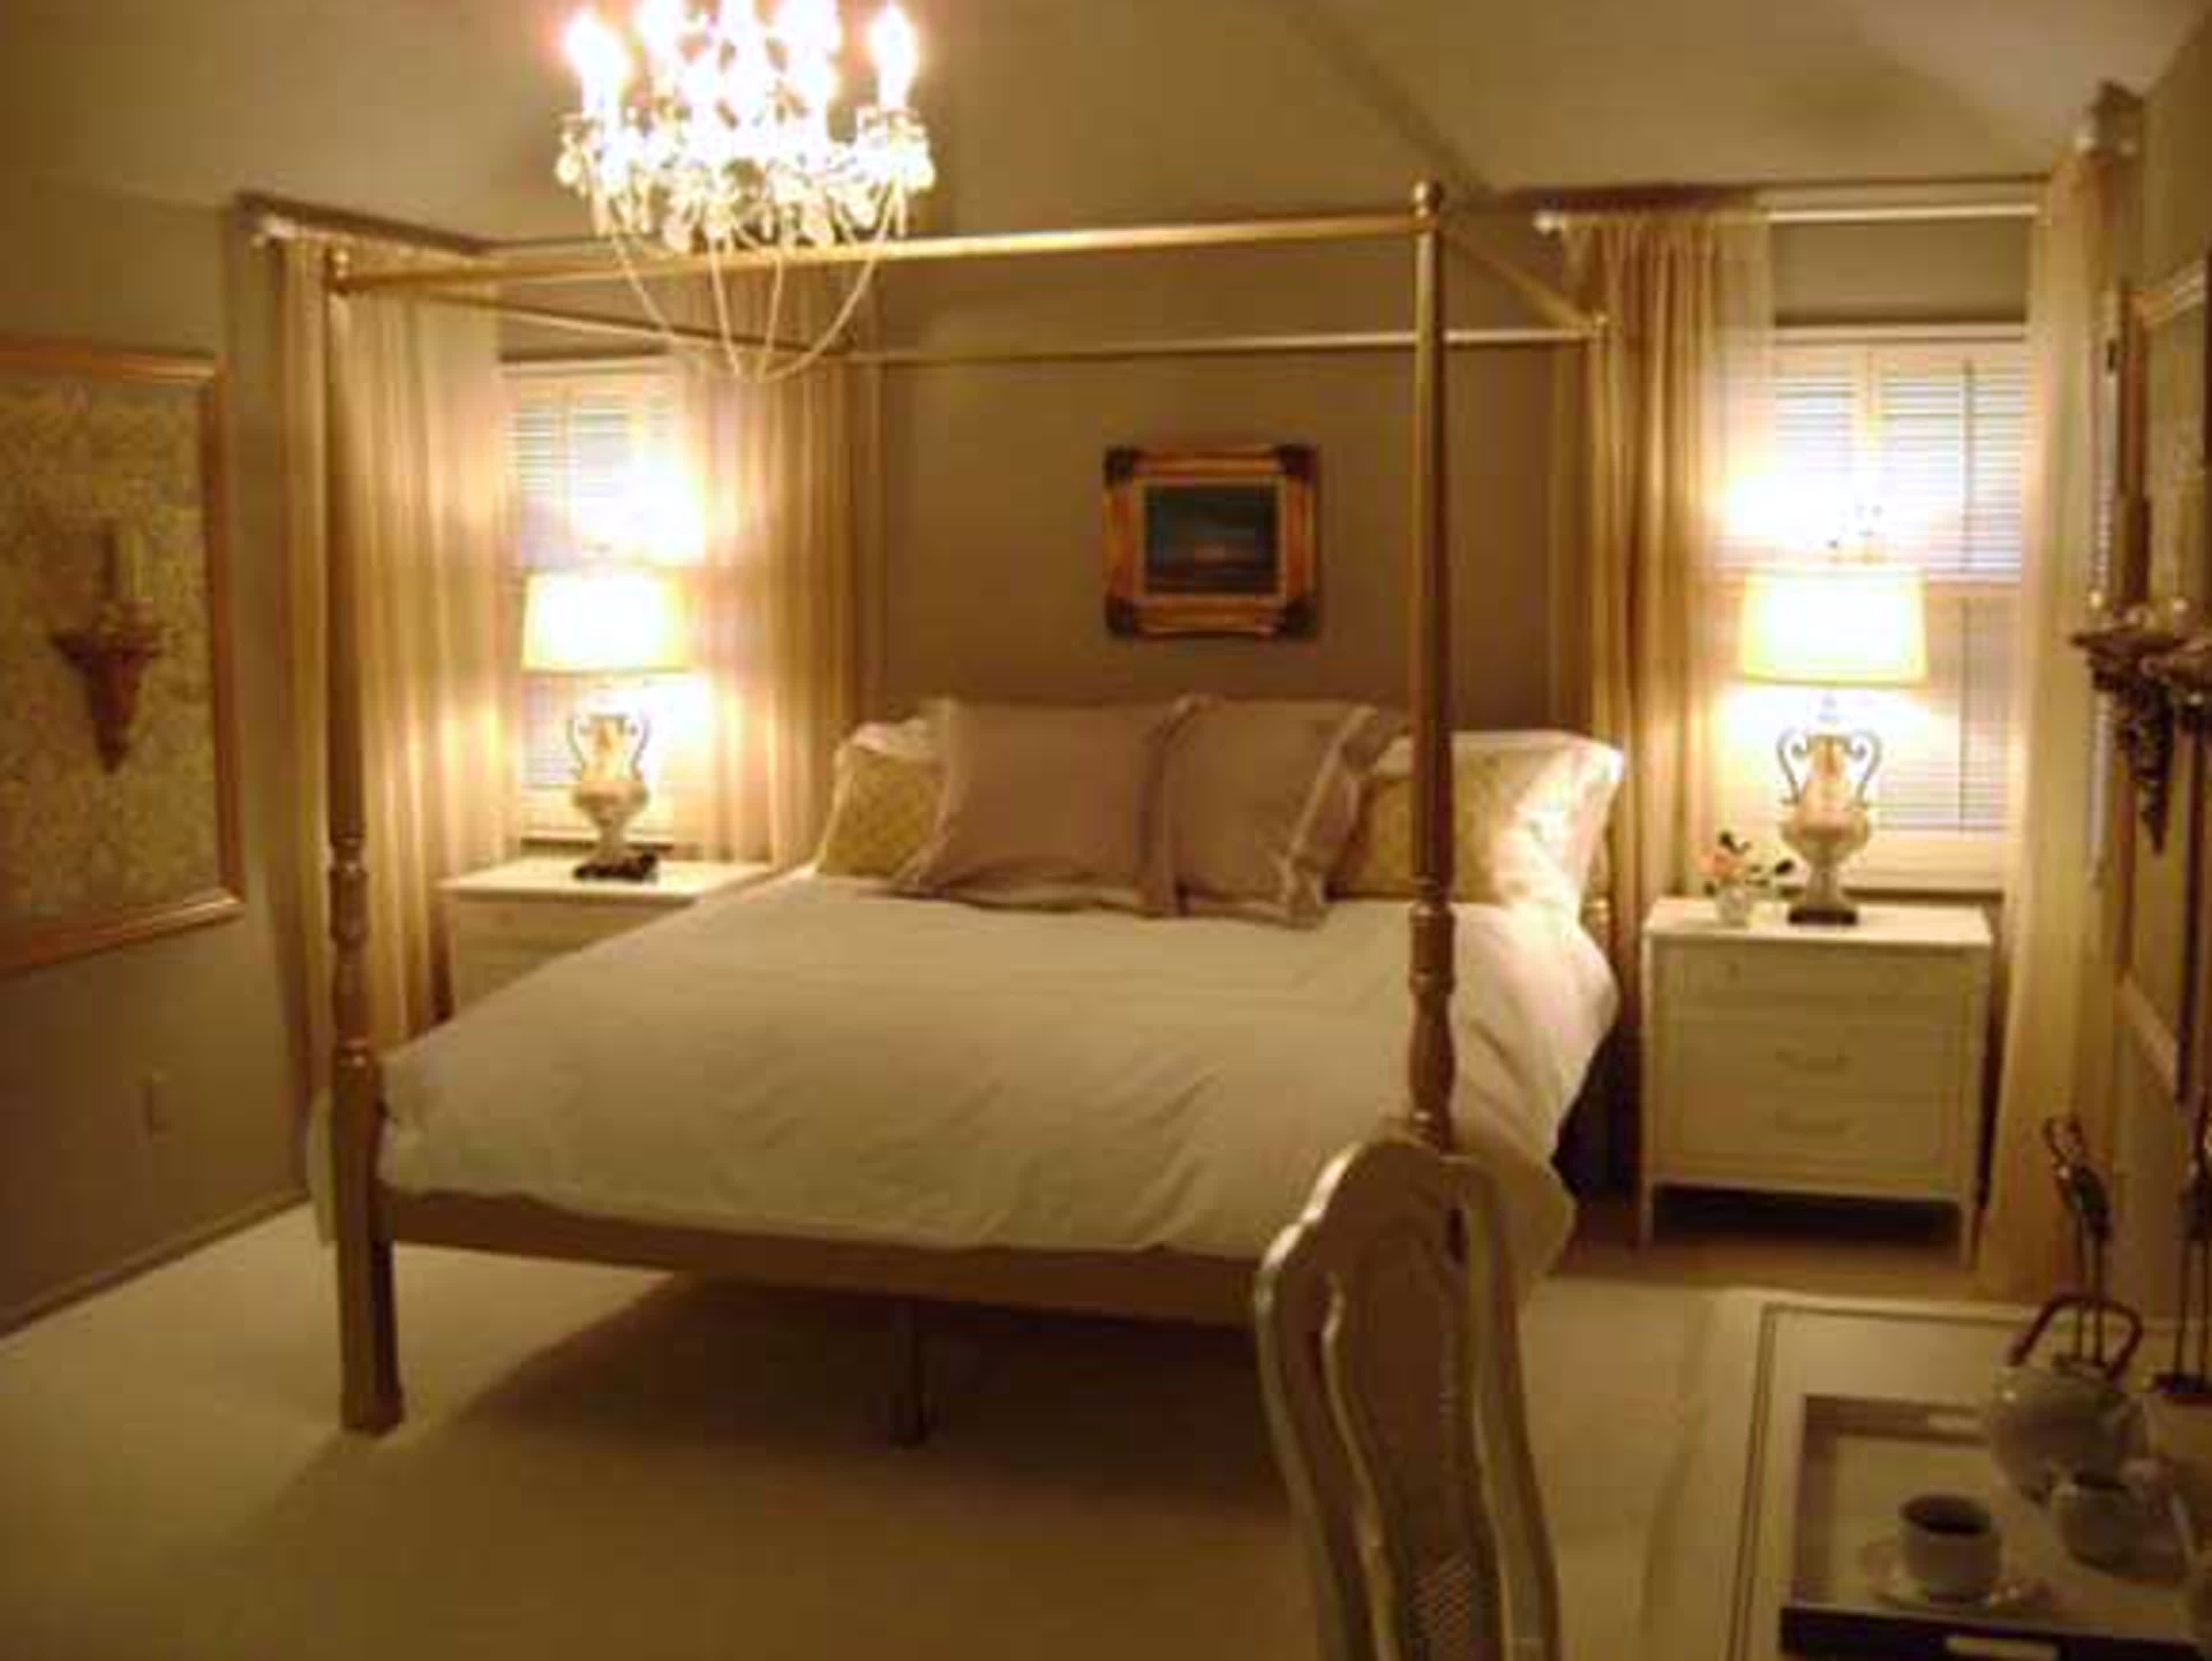 smallromanticbedroomdecoratingideassmallbedroom